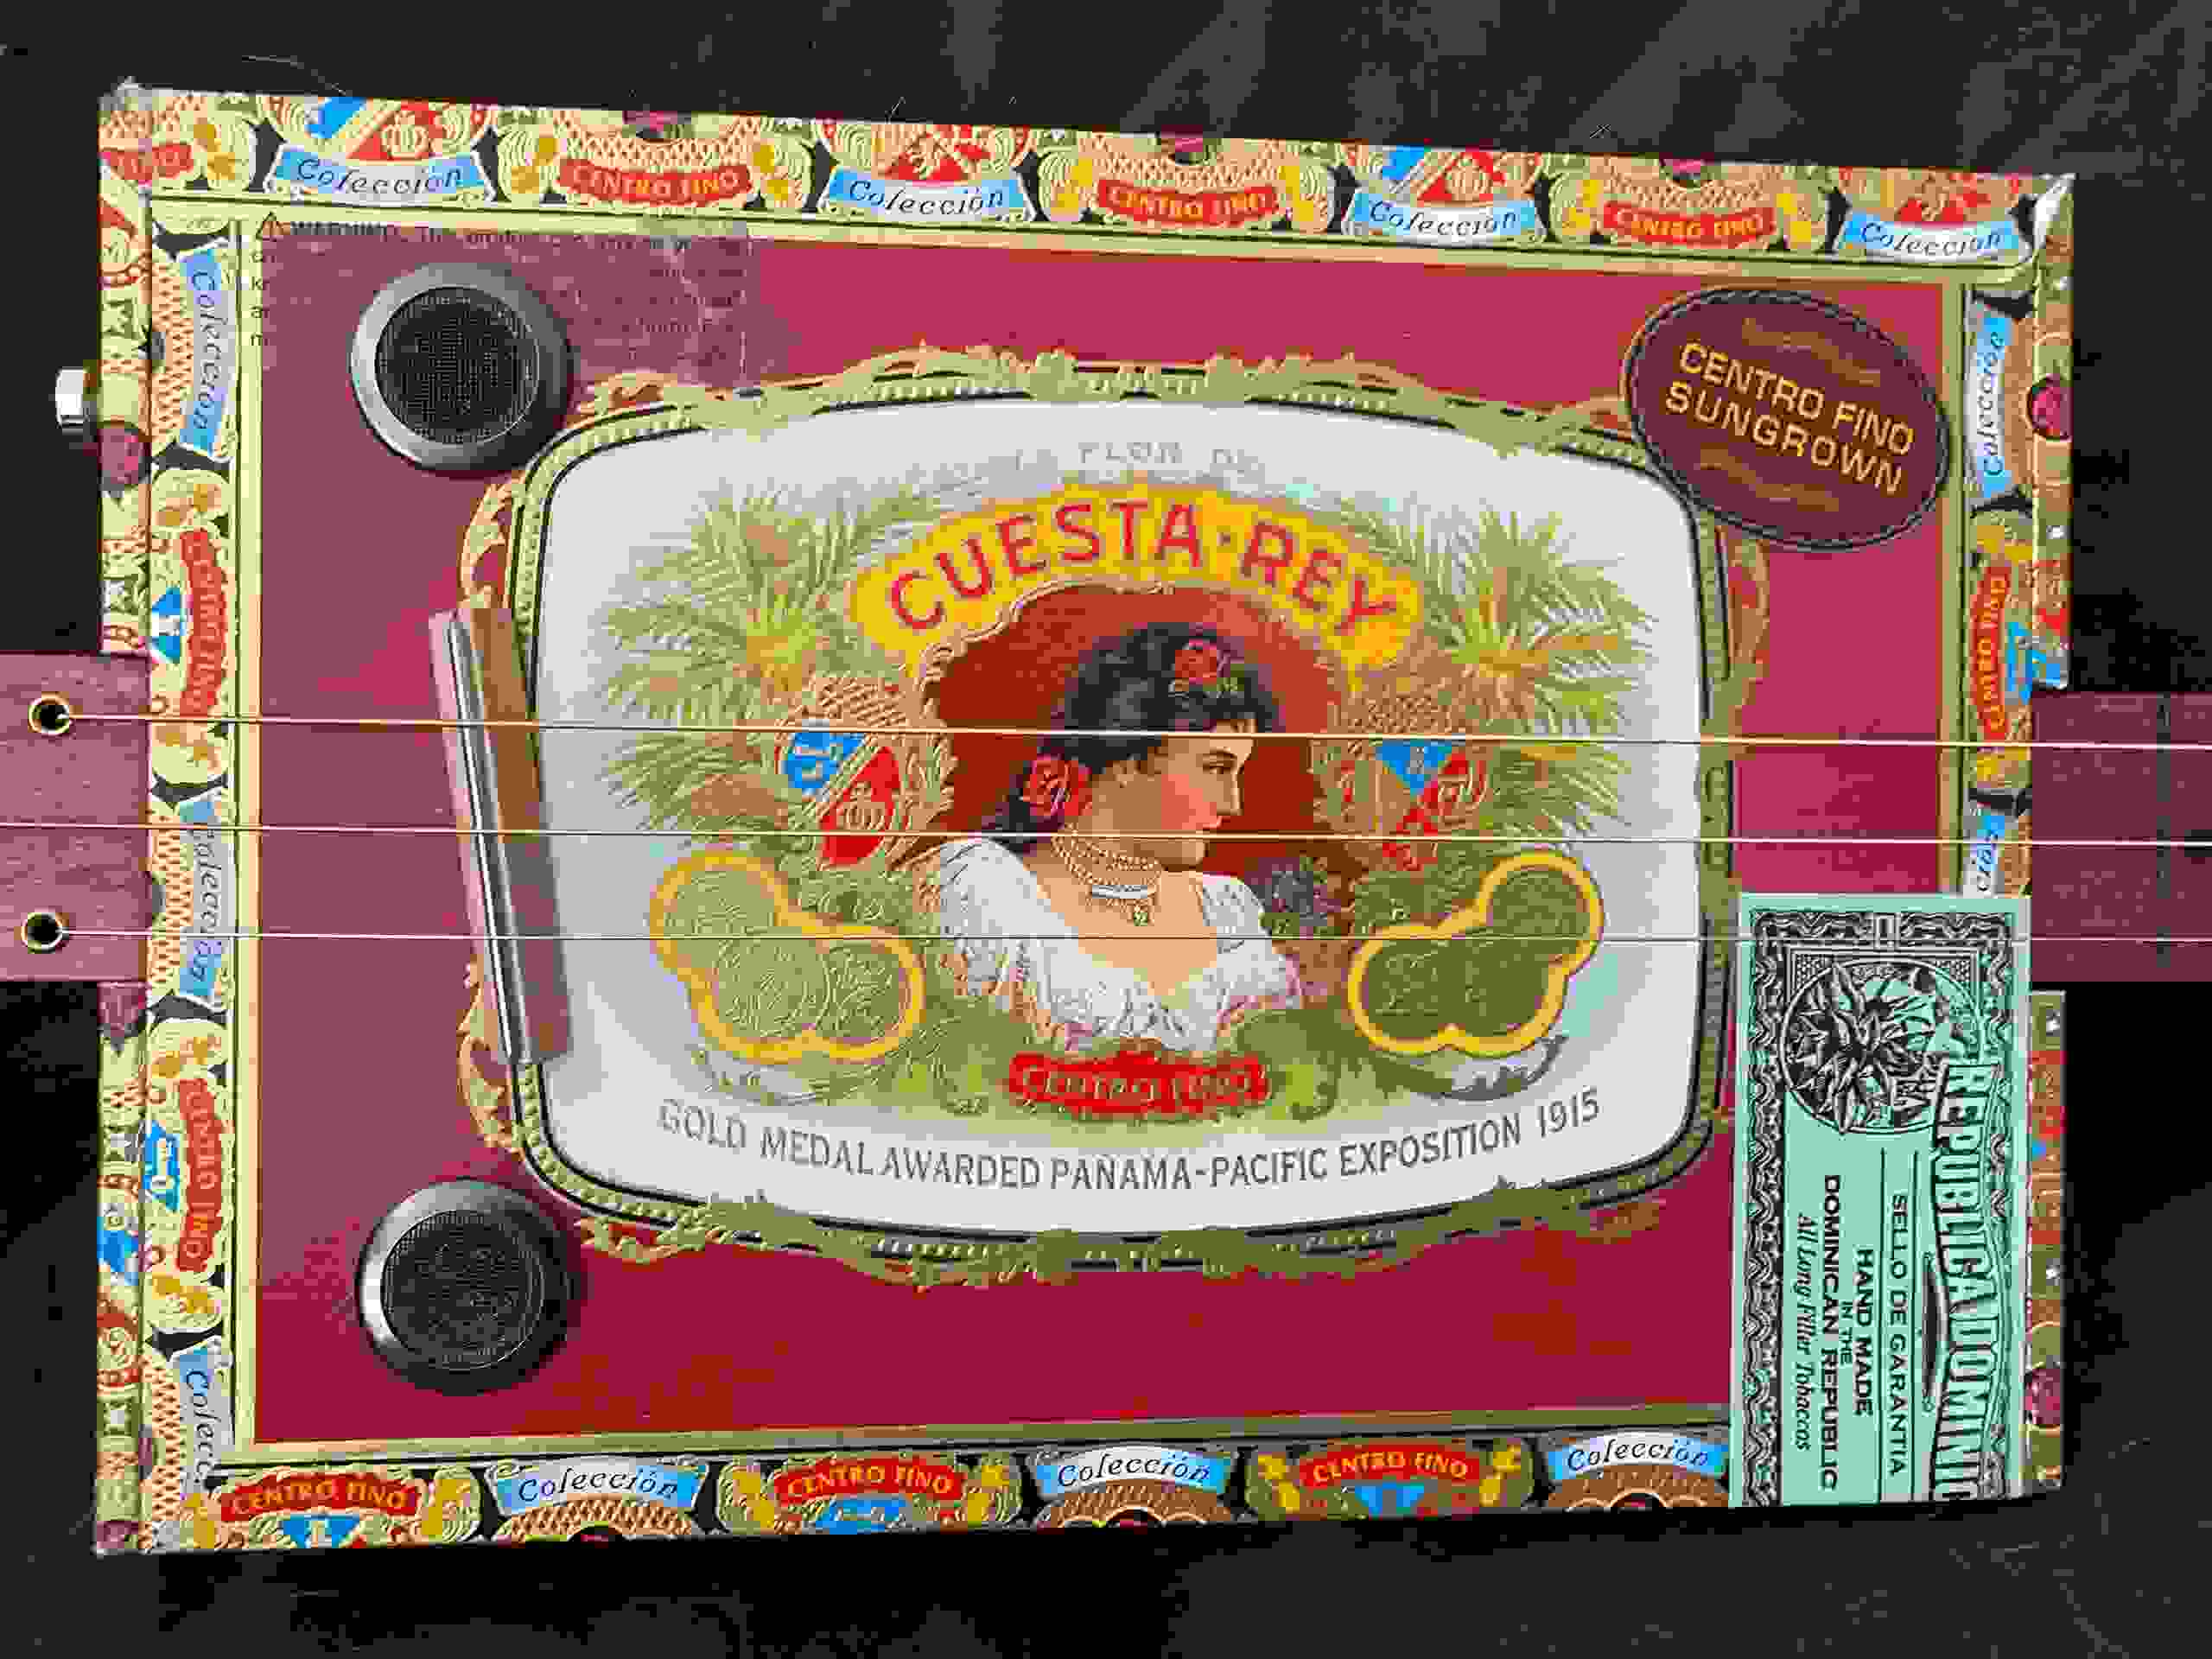 Actual 3-String Fretless Cigar Box Guitar that is featured in this program.